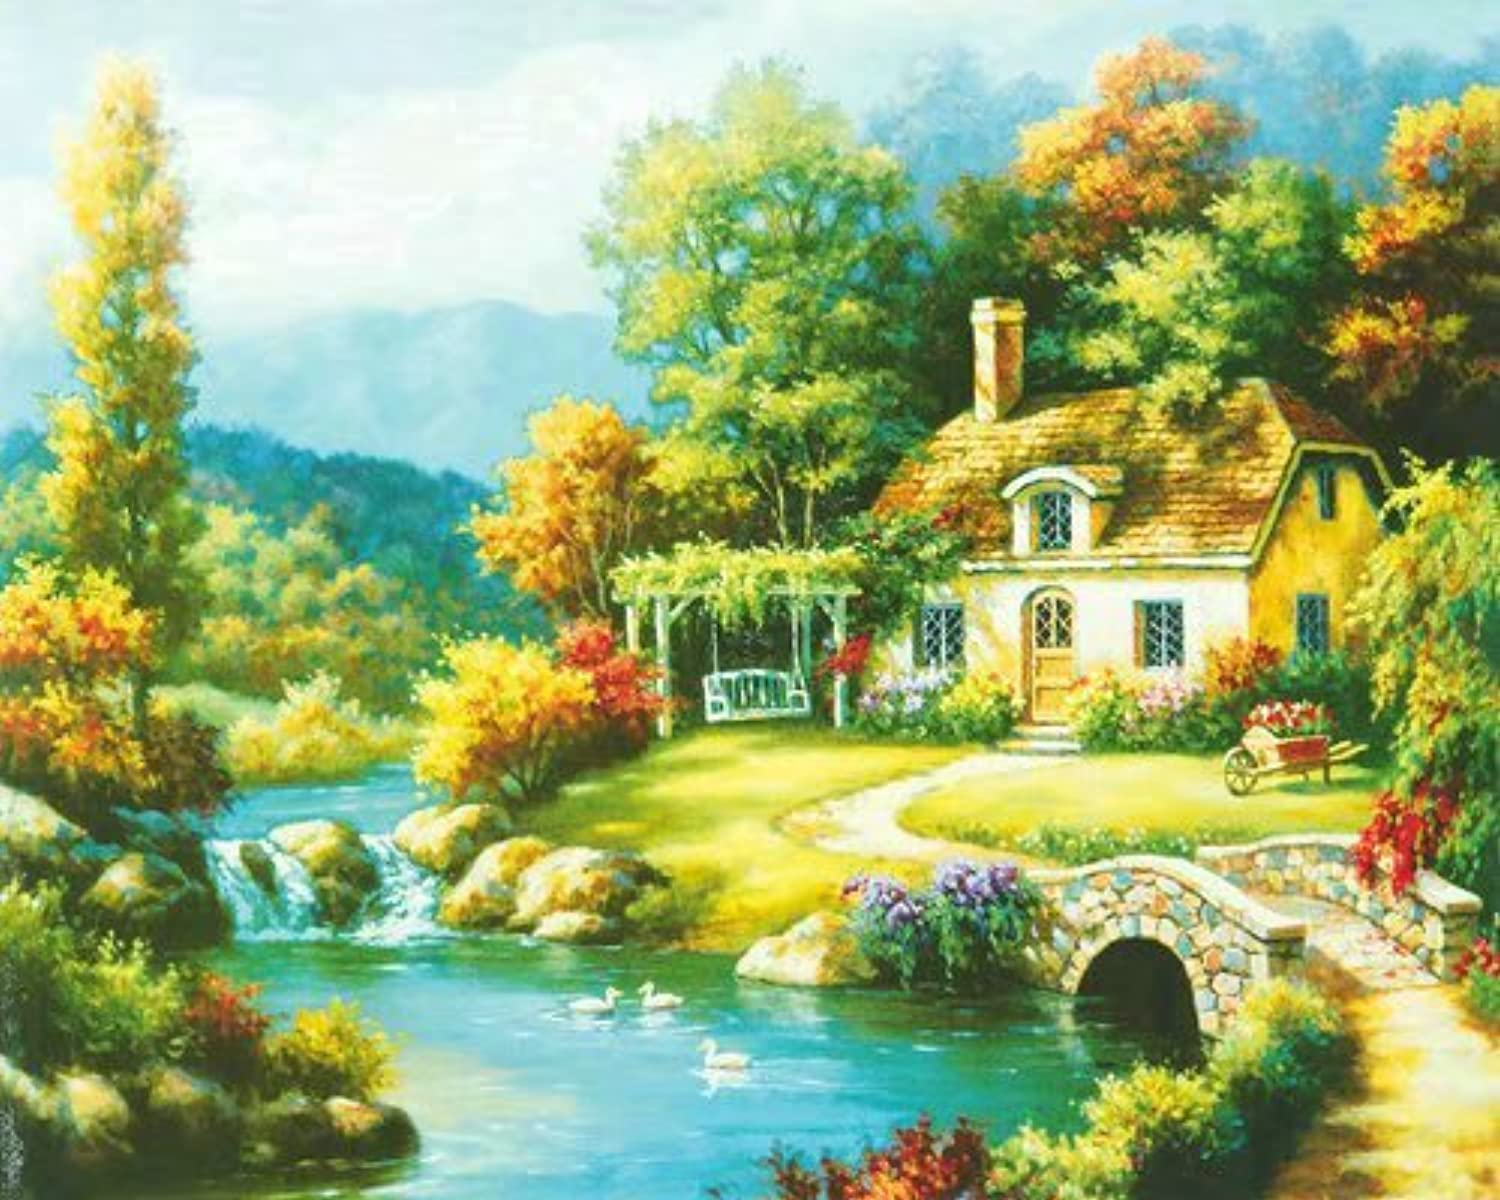 Tonzom Diamond Painting Kit DIY 5D Rhinestone 12 x 16 inches Canvas Full Drill Paint by Numbers for Kids and Adults Beginner with Stitch Pen  Countryside Cottage